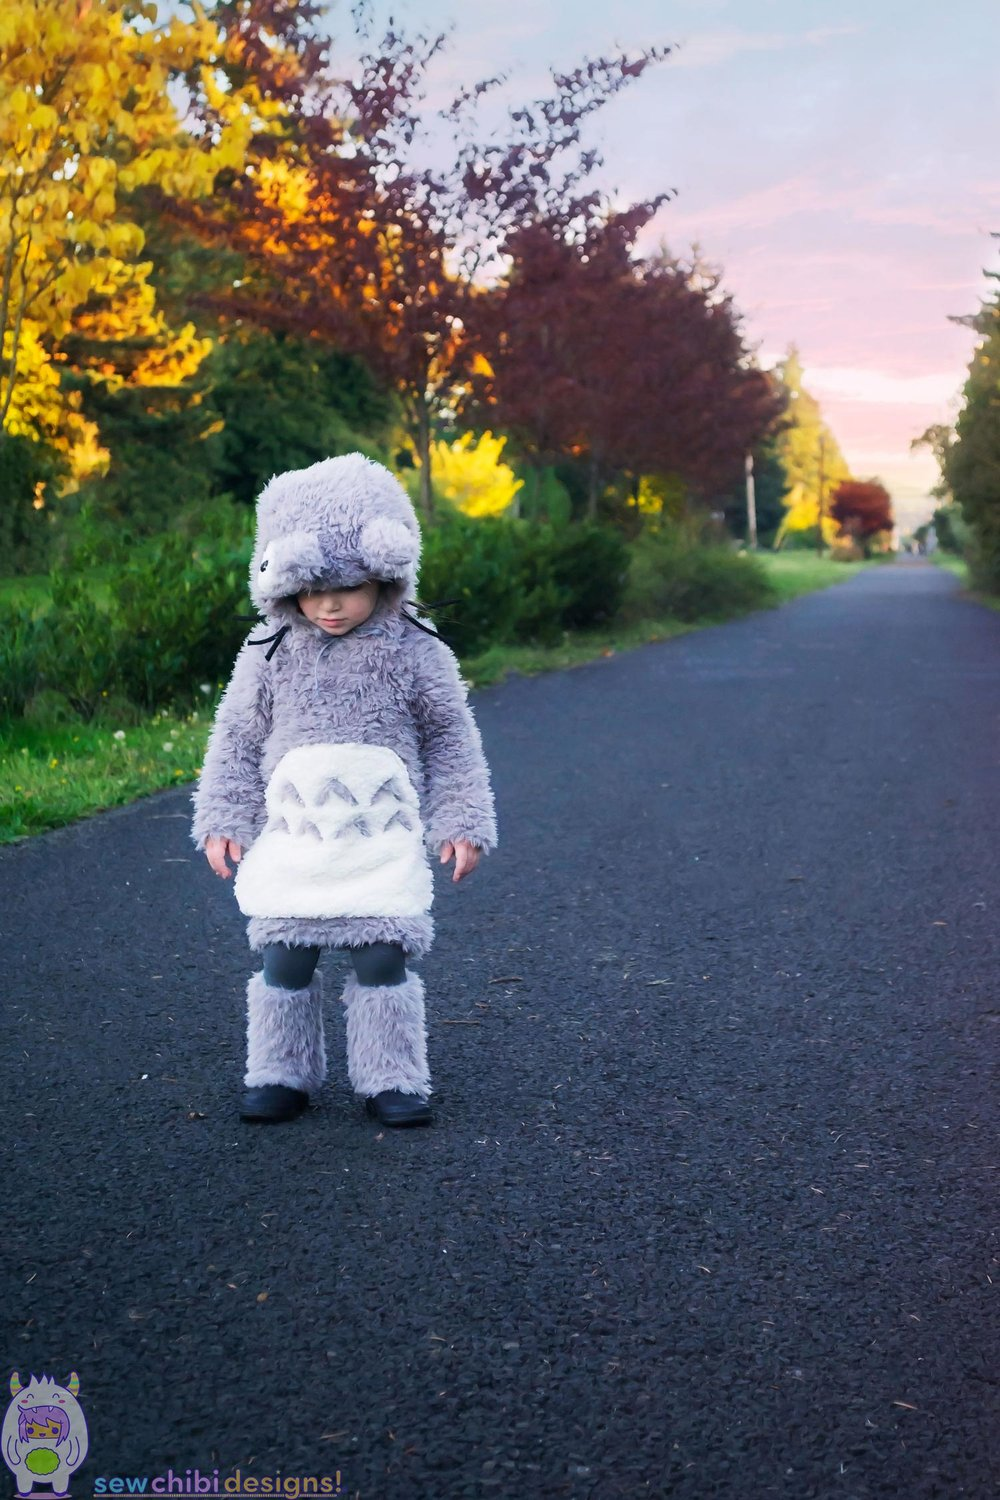 Chibi cosplay of Totoro from My Neighbor Totoro sewn by Sew Chibi Designs for Halloween featuring the Bimaa Sweater PDF pattern